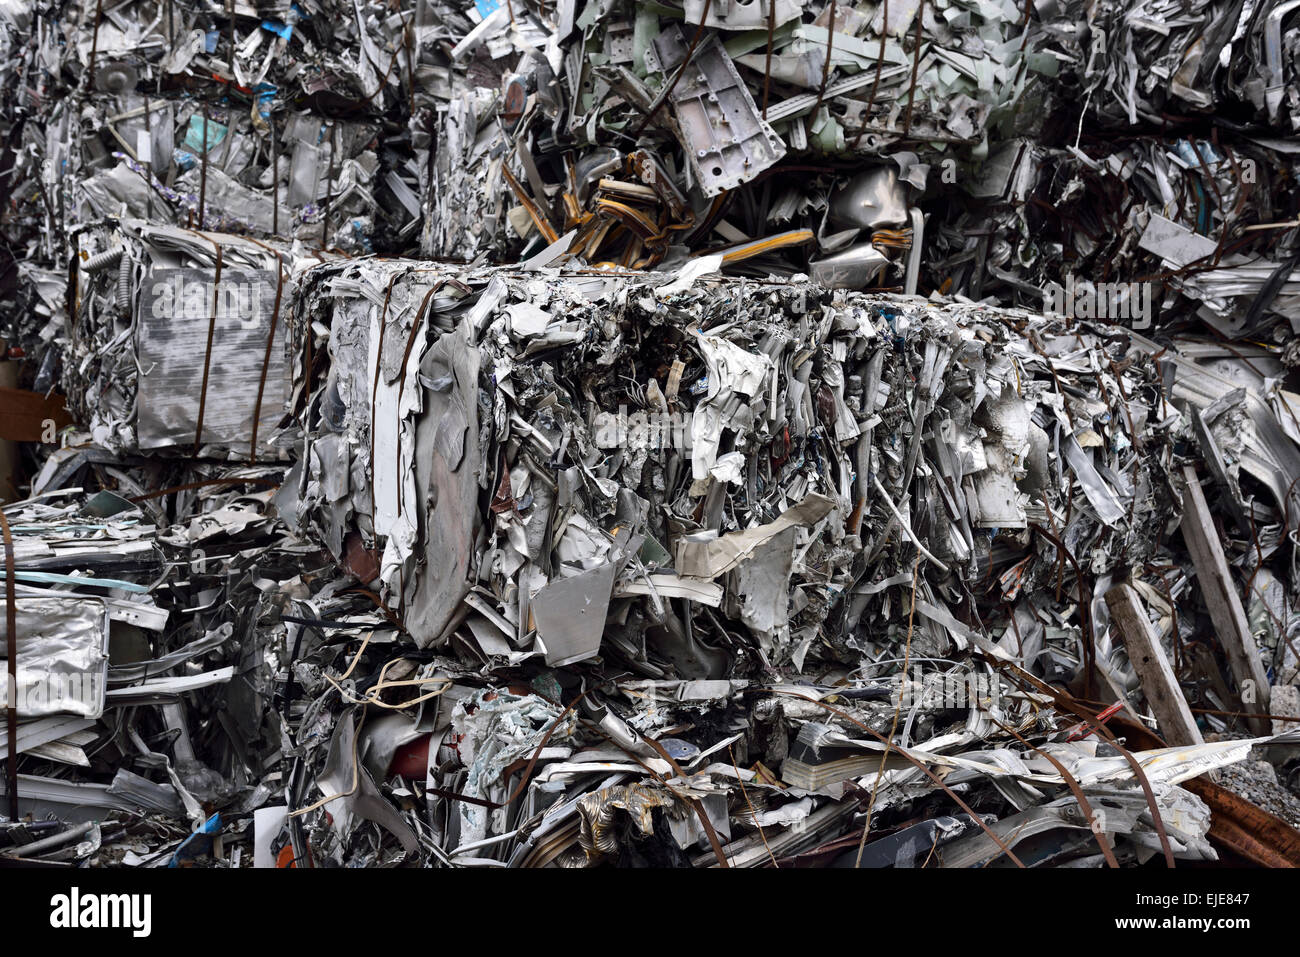 Close up of crushed recycled scrap metal bales at a dump in Toronto - Stock Image